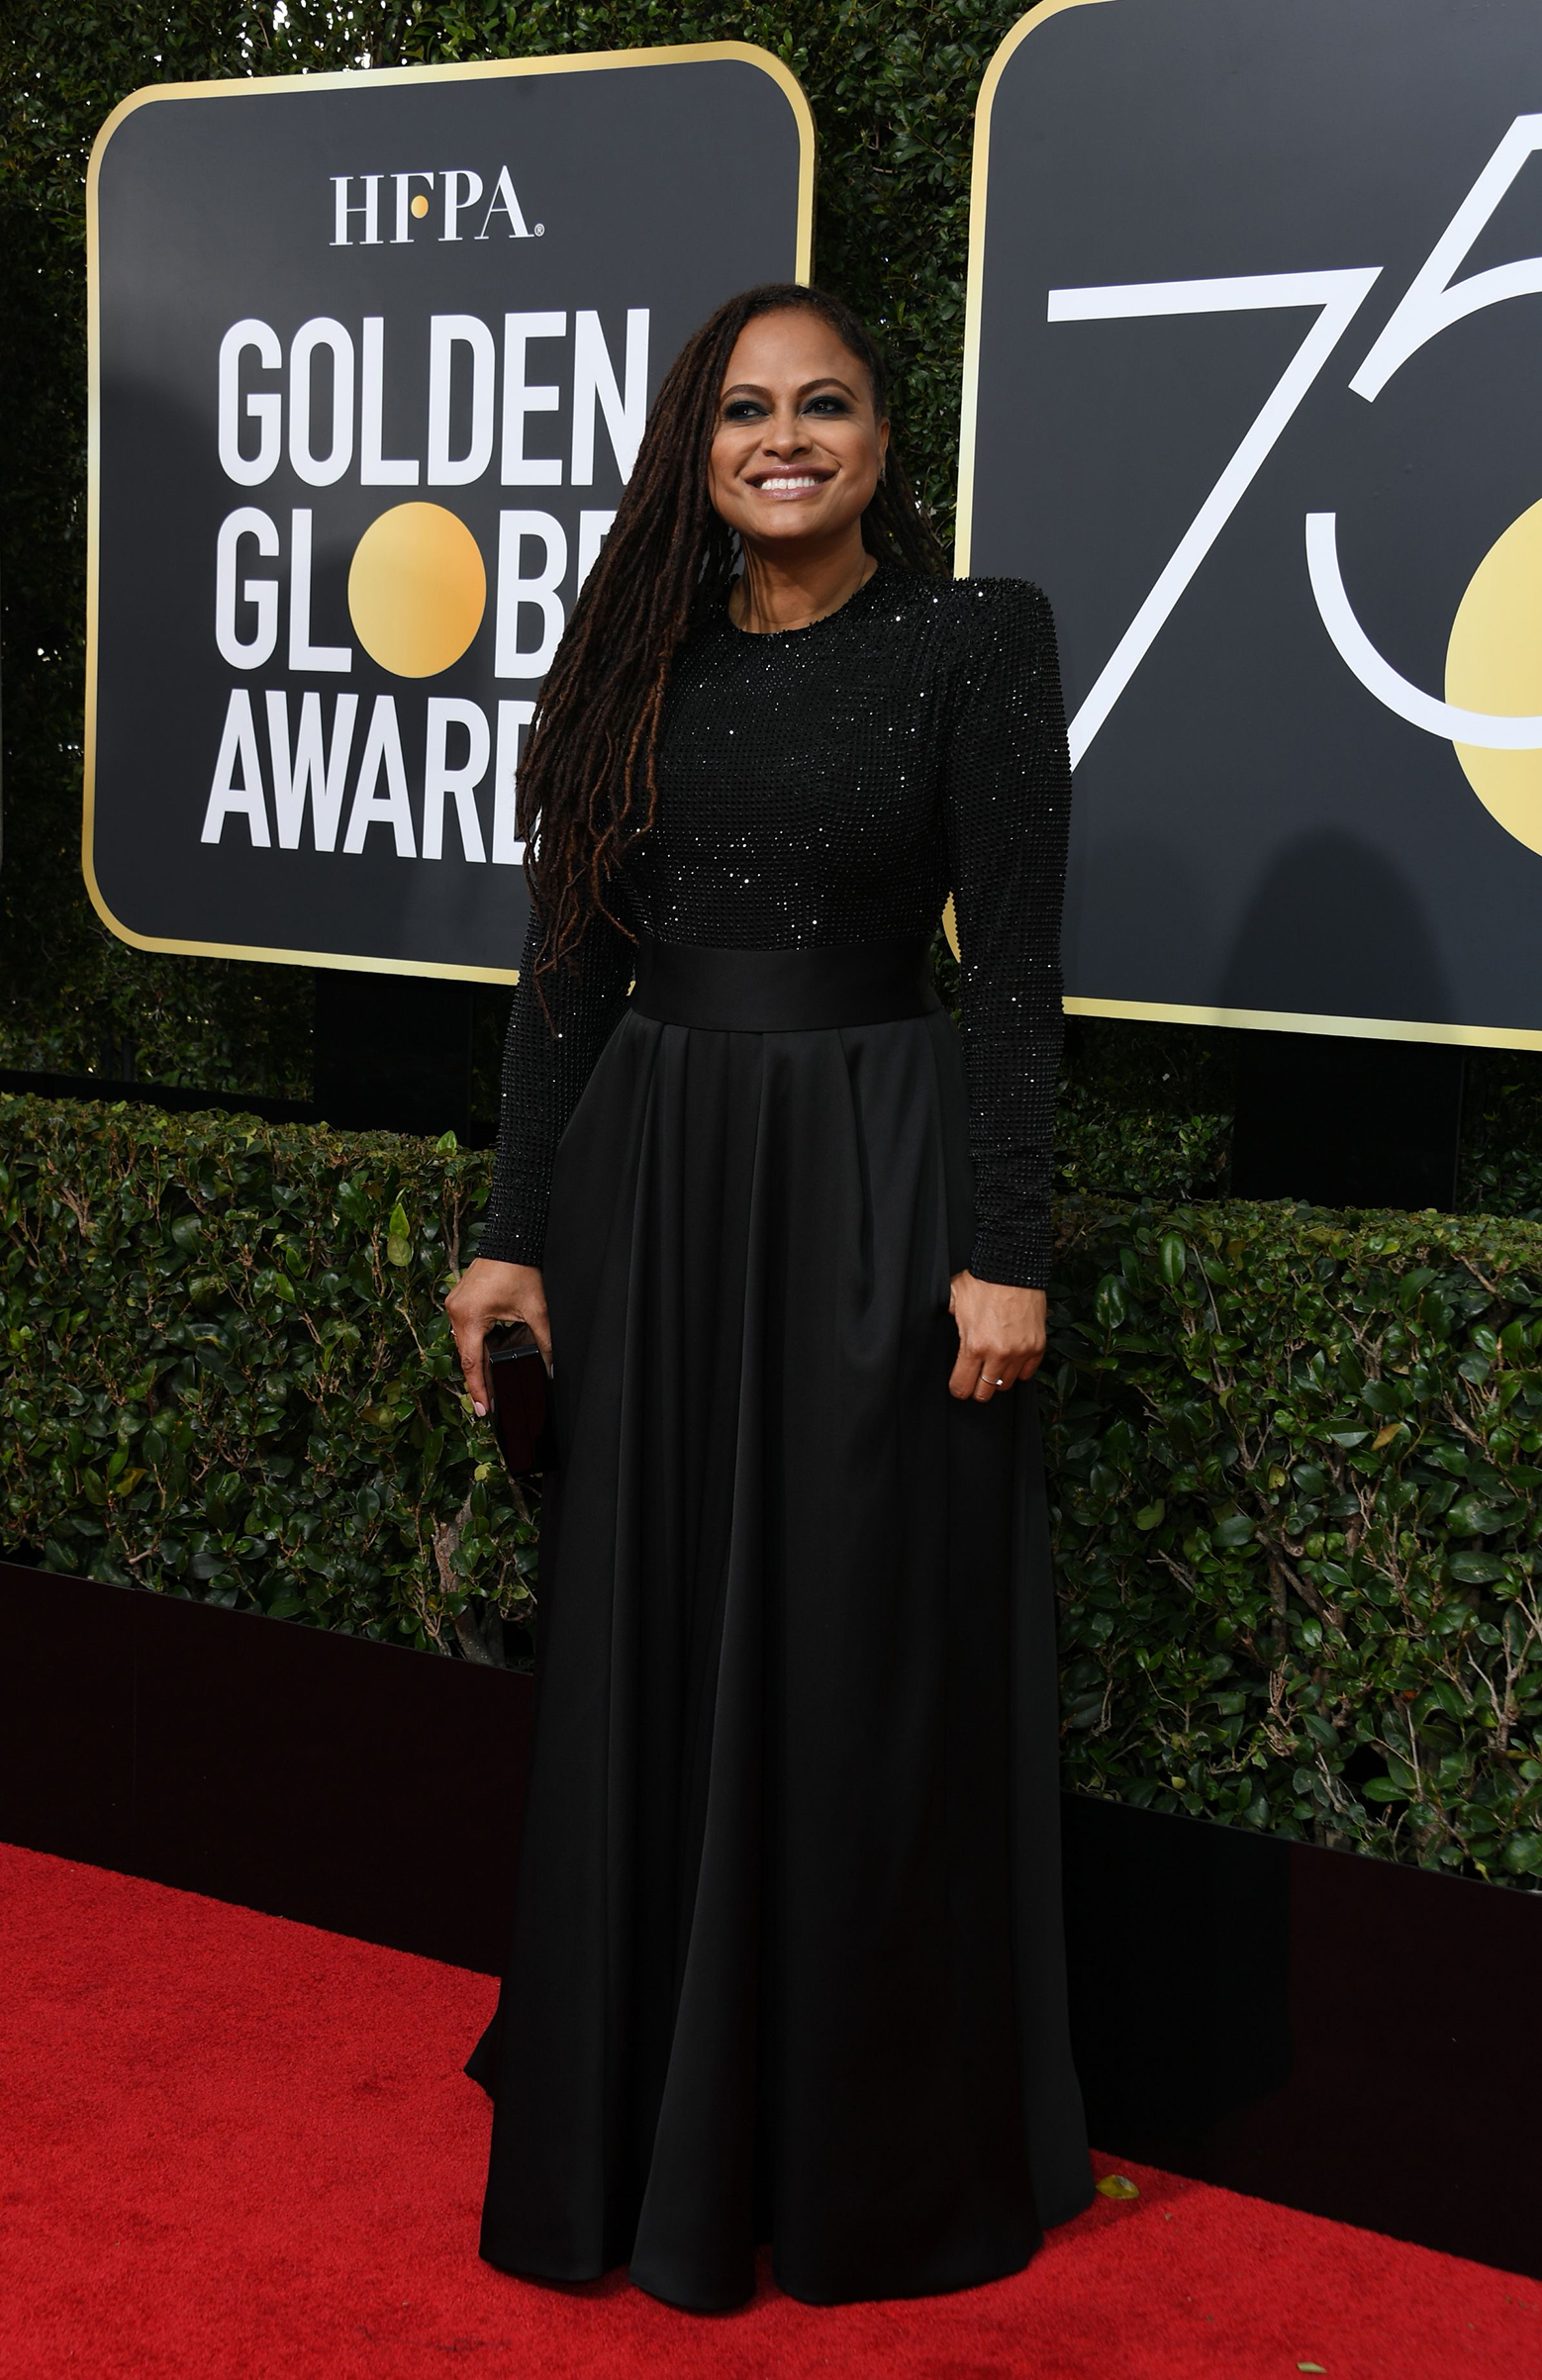 Ava DuVernay arrives for the 75th Golden Globe Awards on January 7, 2018, in Beverly Hills, California.